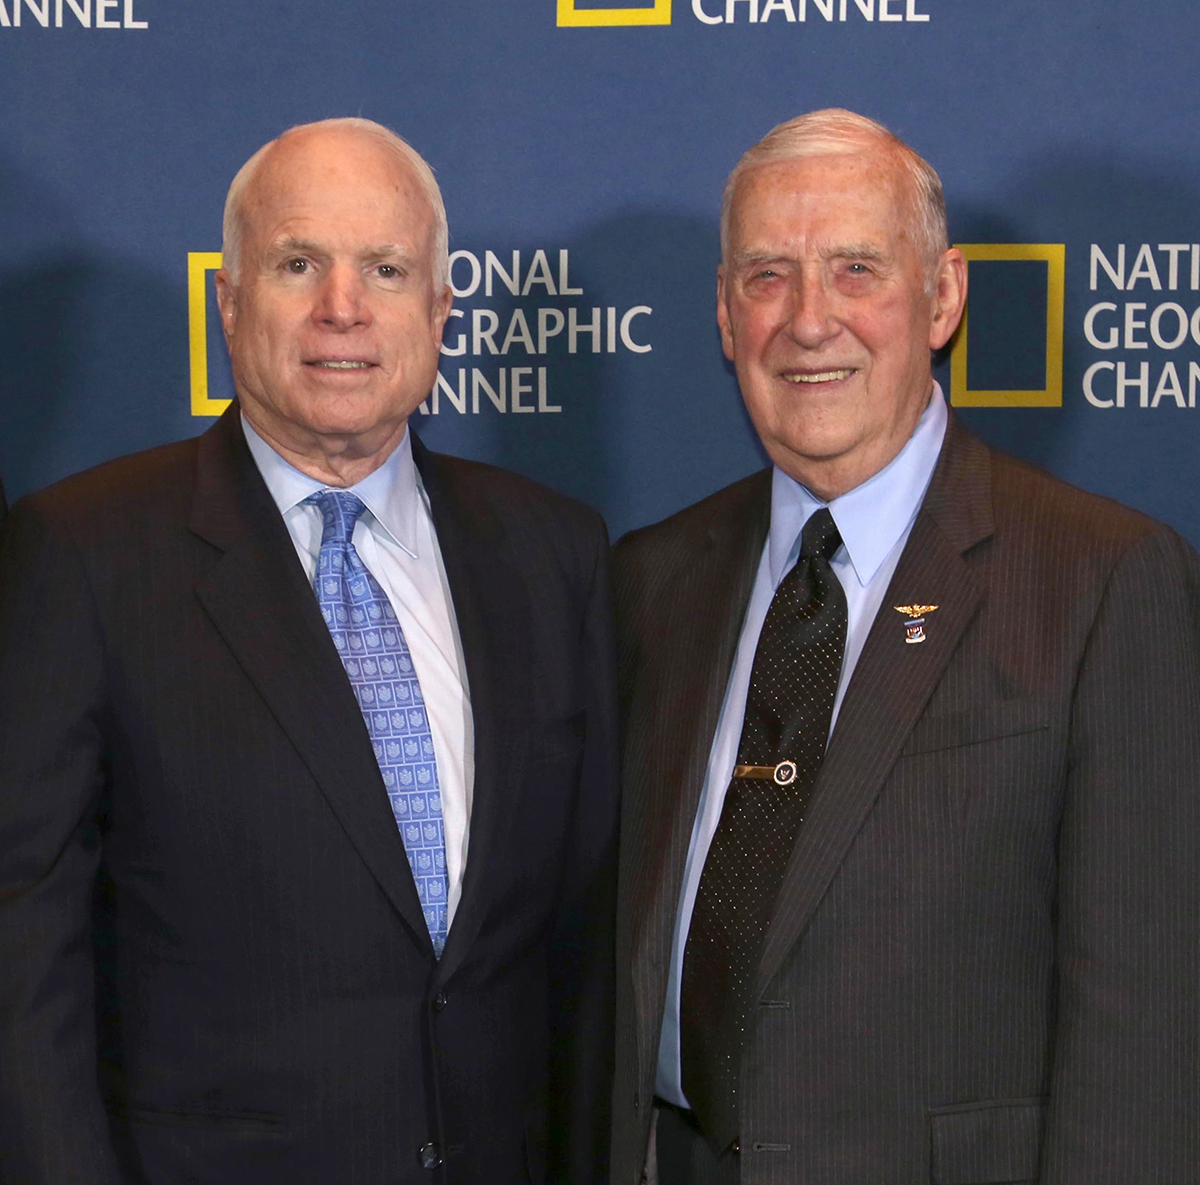 """Sen. John McCain poses with Ernest Brace in a publicity photo for the National Geographic Channel. The pair were featured in an episode of the network's """"Locked Up Abroad"""" series. (Submitted Photo)"""